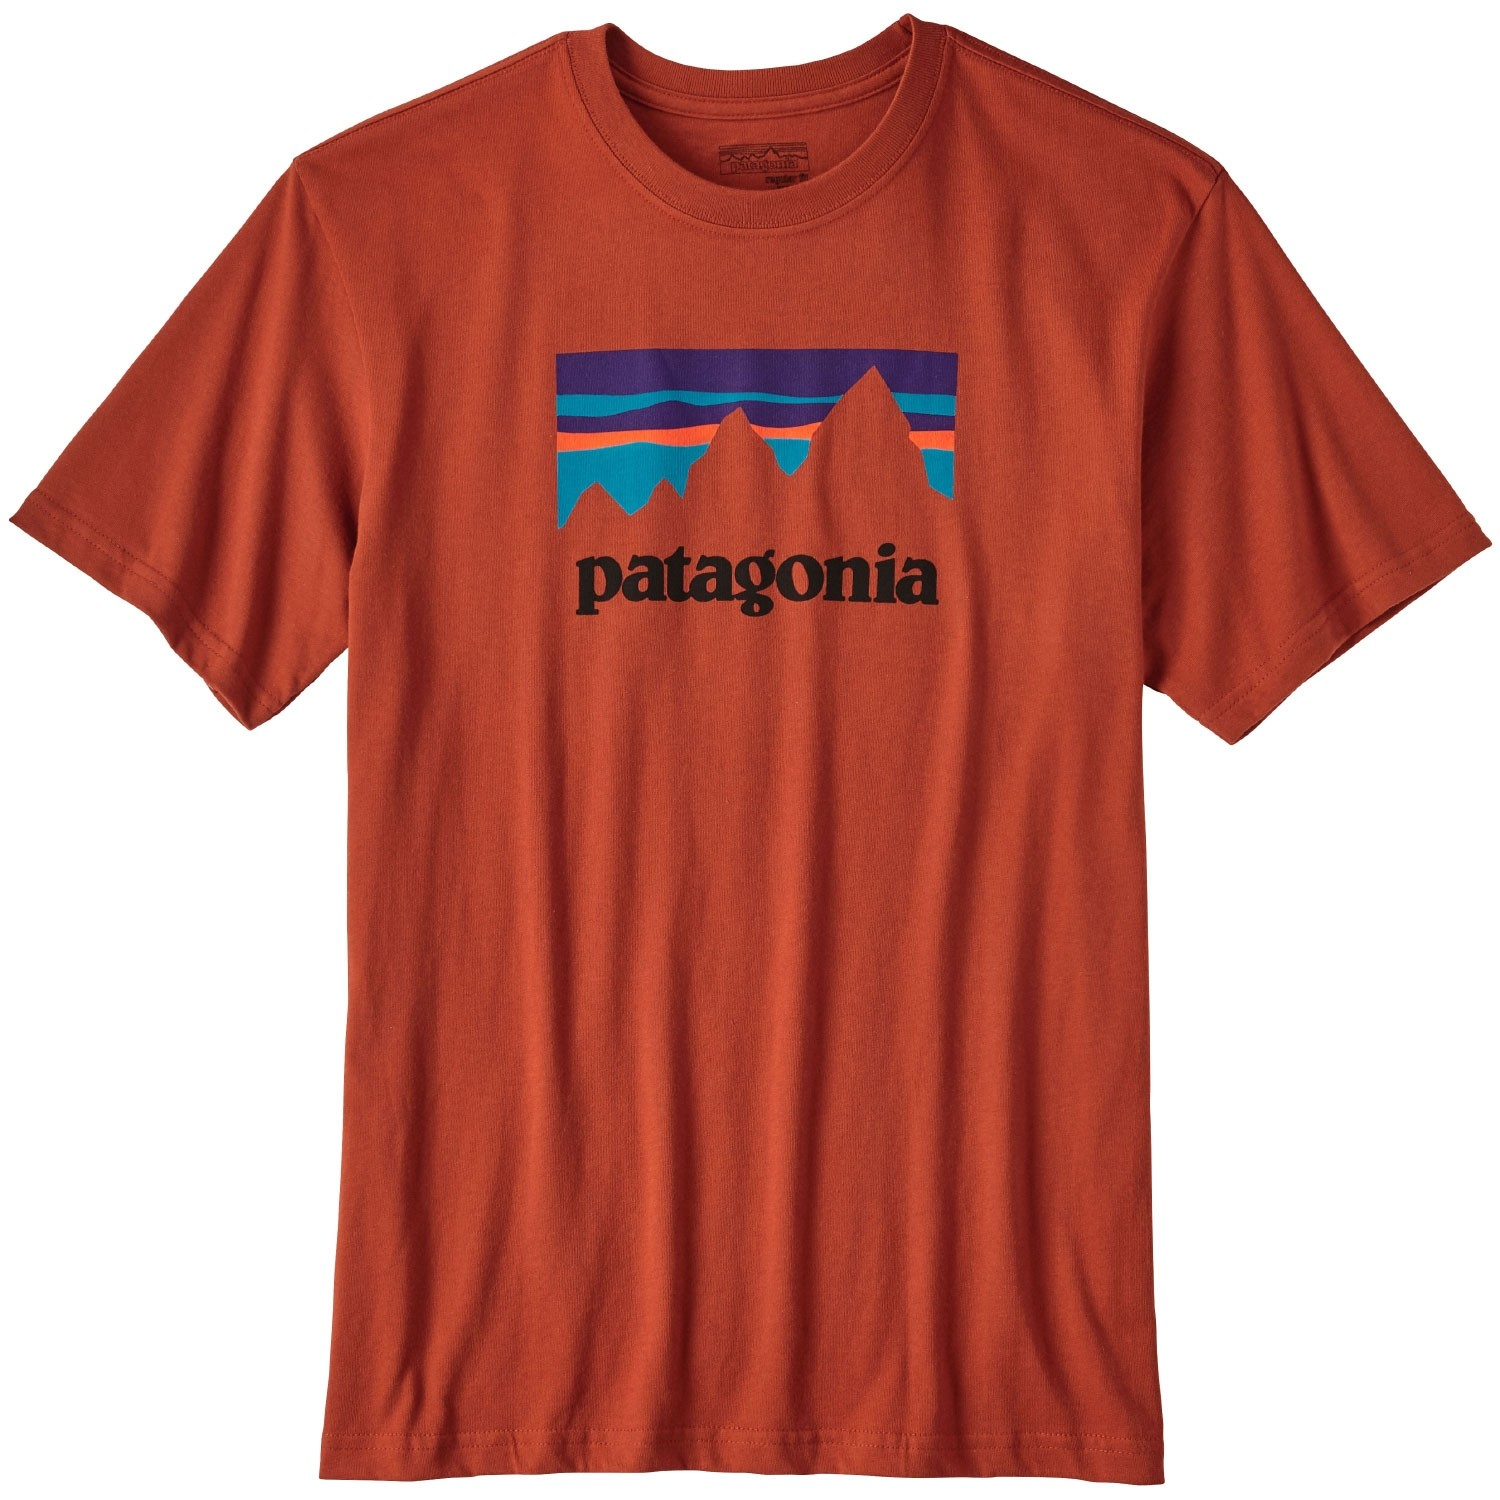 Patagonia-Shop-Sticker-Cotton-T-Shirt-Roots-Red-AW17.jpg